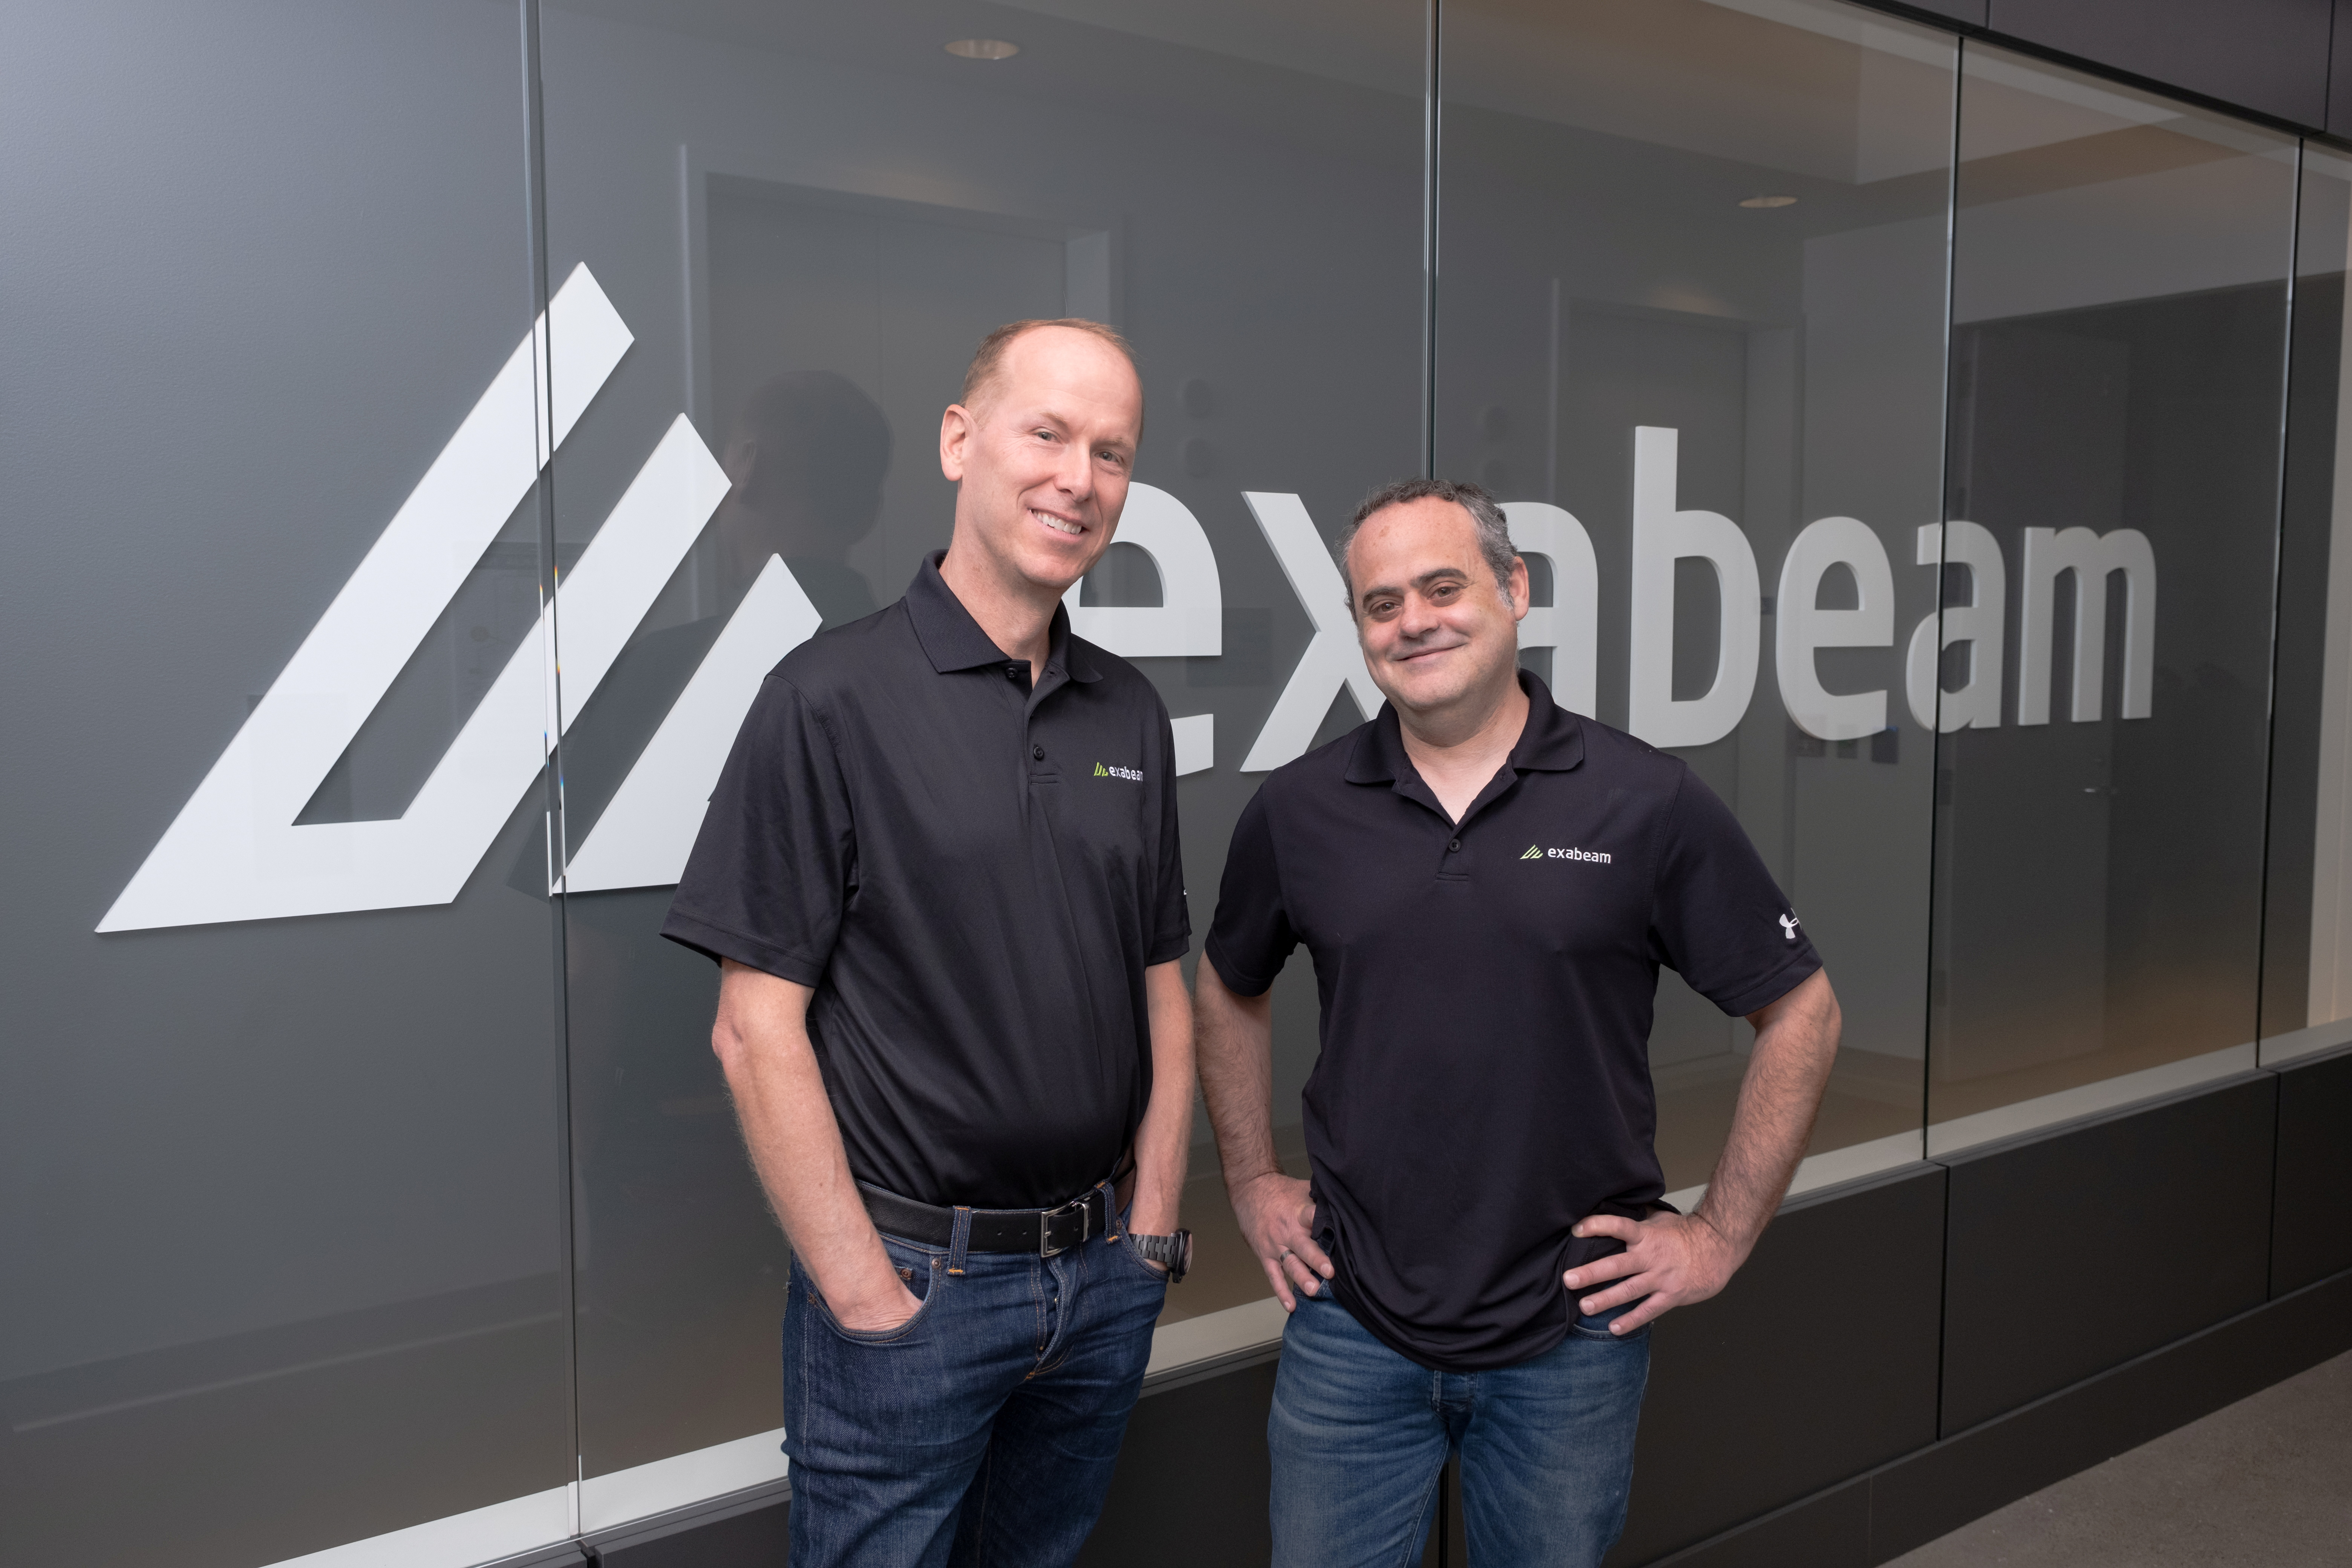 Exabeam CEO Michael DeCesare (L) and chairman and co-founder Nir Polak (R) pose in front of the Exabeam logo in Foster City, California, U.S. in this undated May 2021 handout photograph. Courtesy BIGSHOT PHOTOGRAPHY/Handout via REUTERS